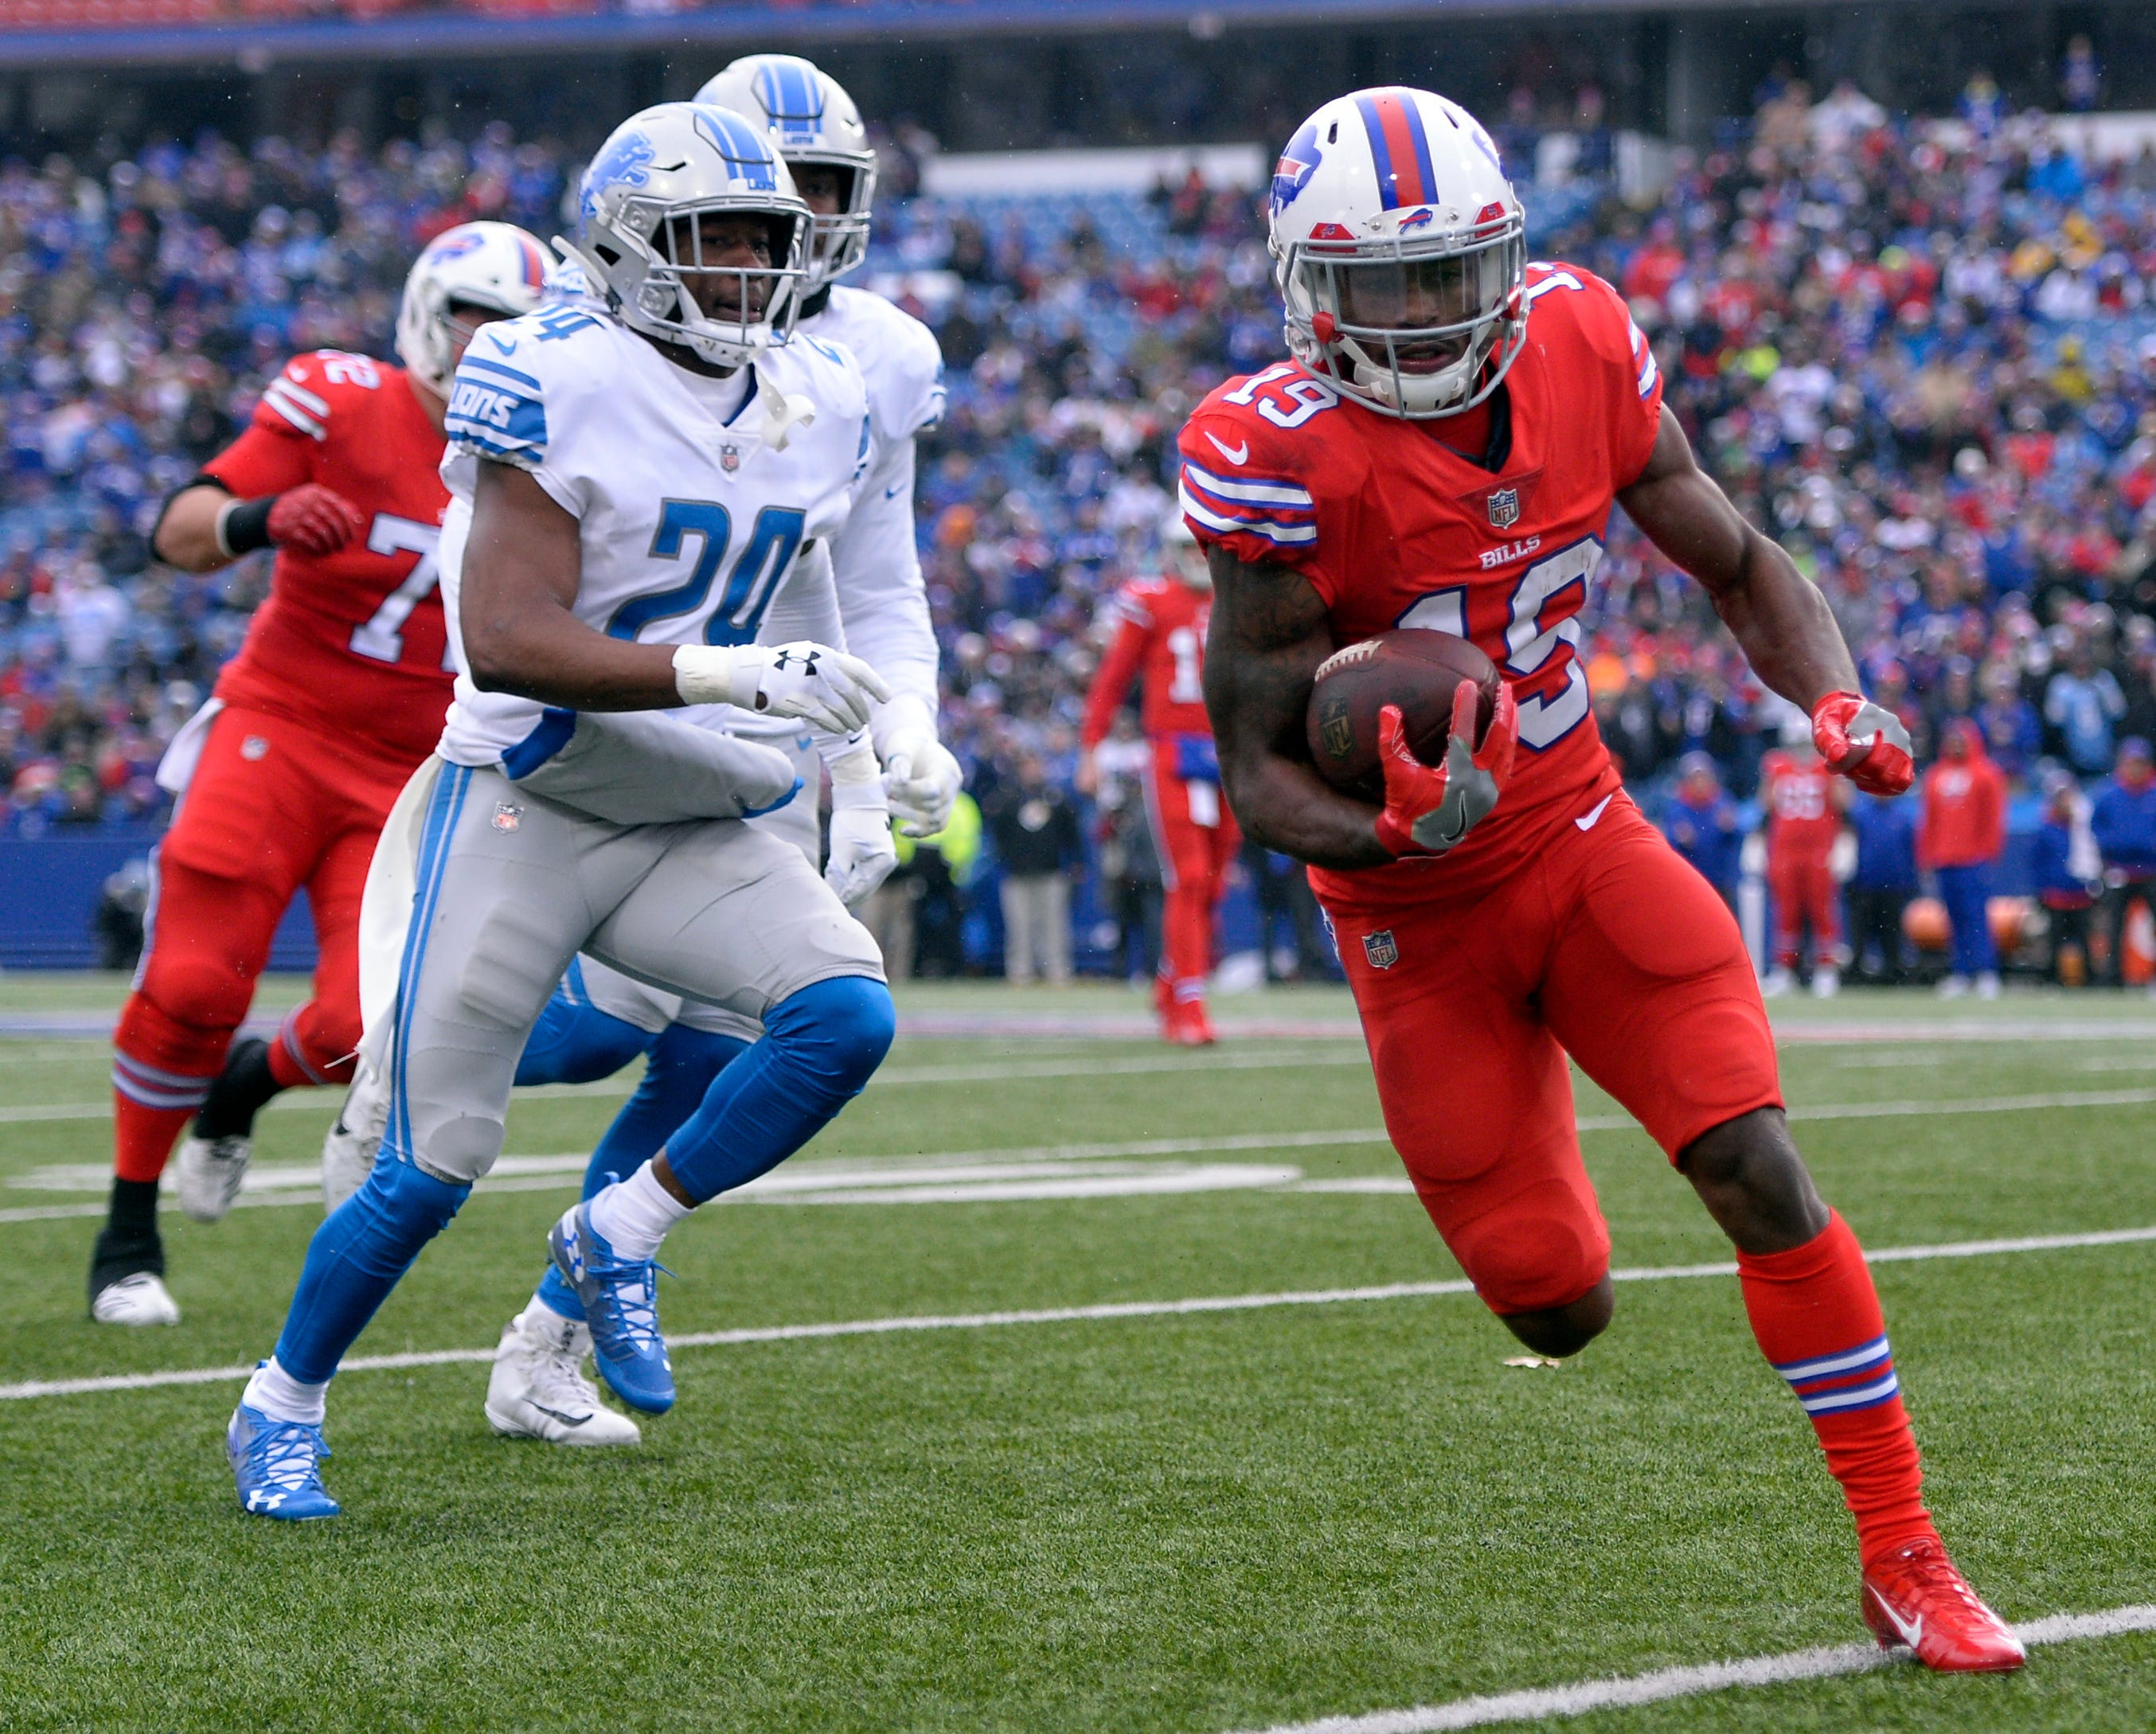 Bills wide receiver Isaiah McKenzie, right, rushes during the first half on Sunday, Dec. 16, 2018, in Orchard Park, N.Y.